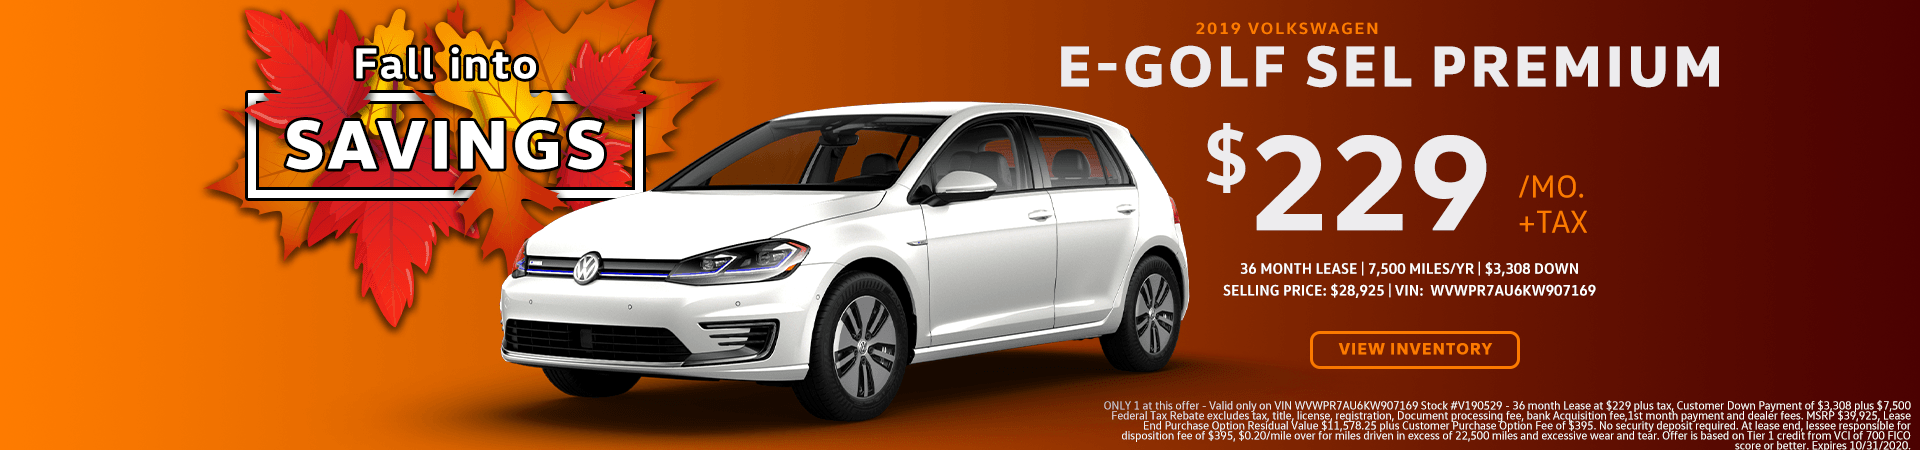 EGOLF – SC Oct 2020